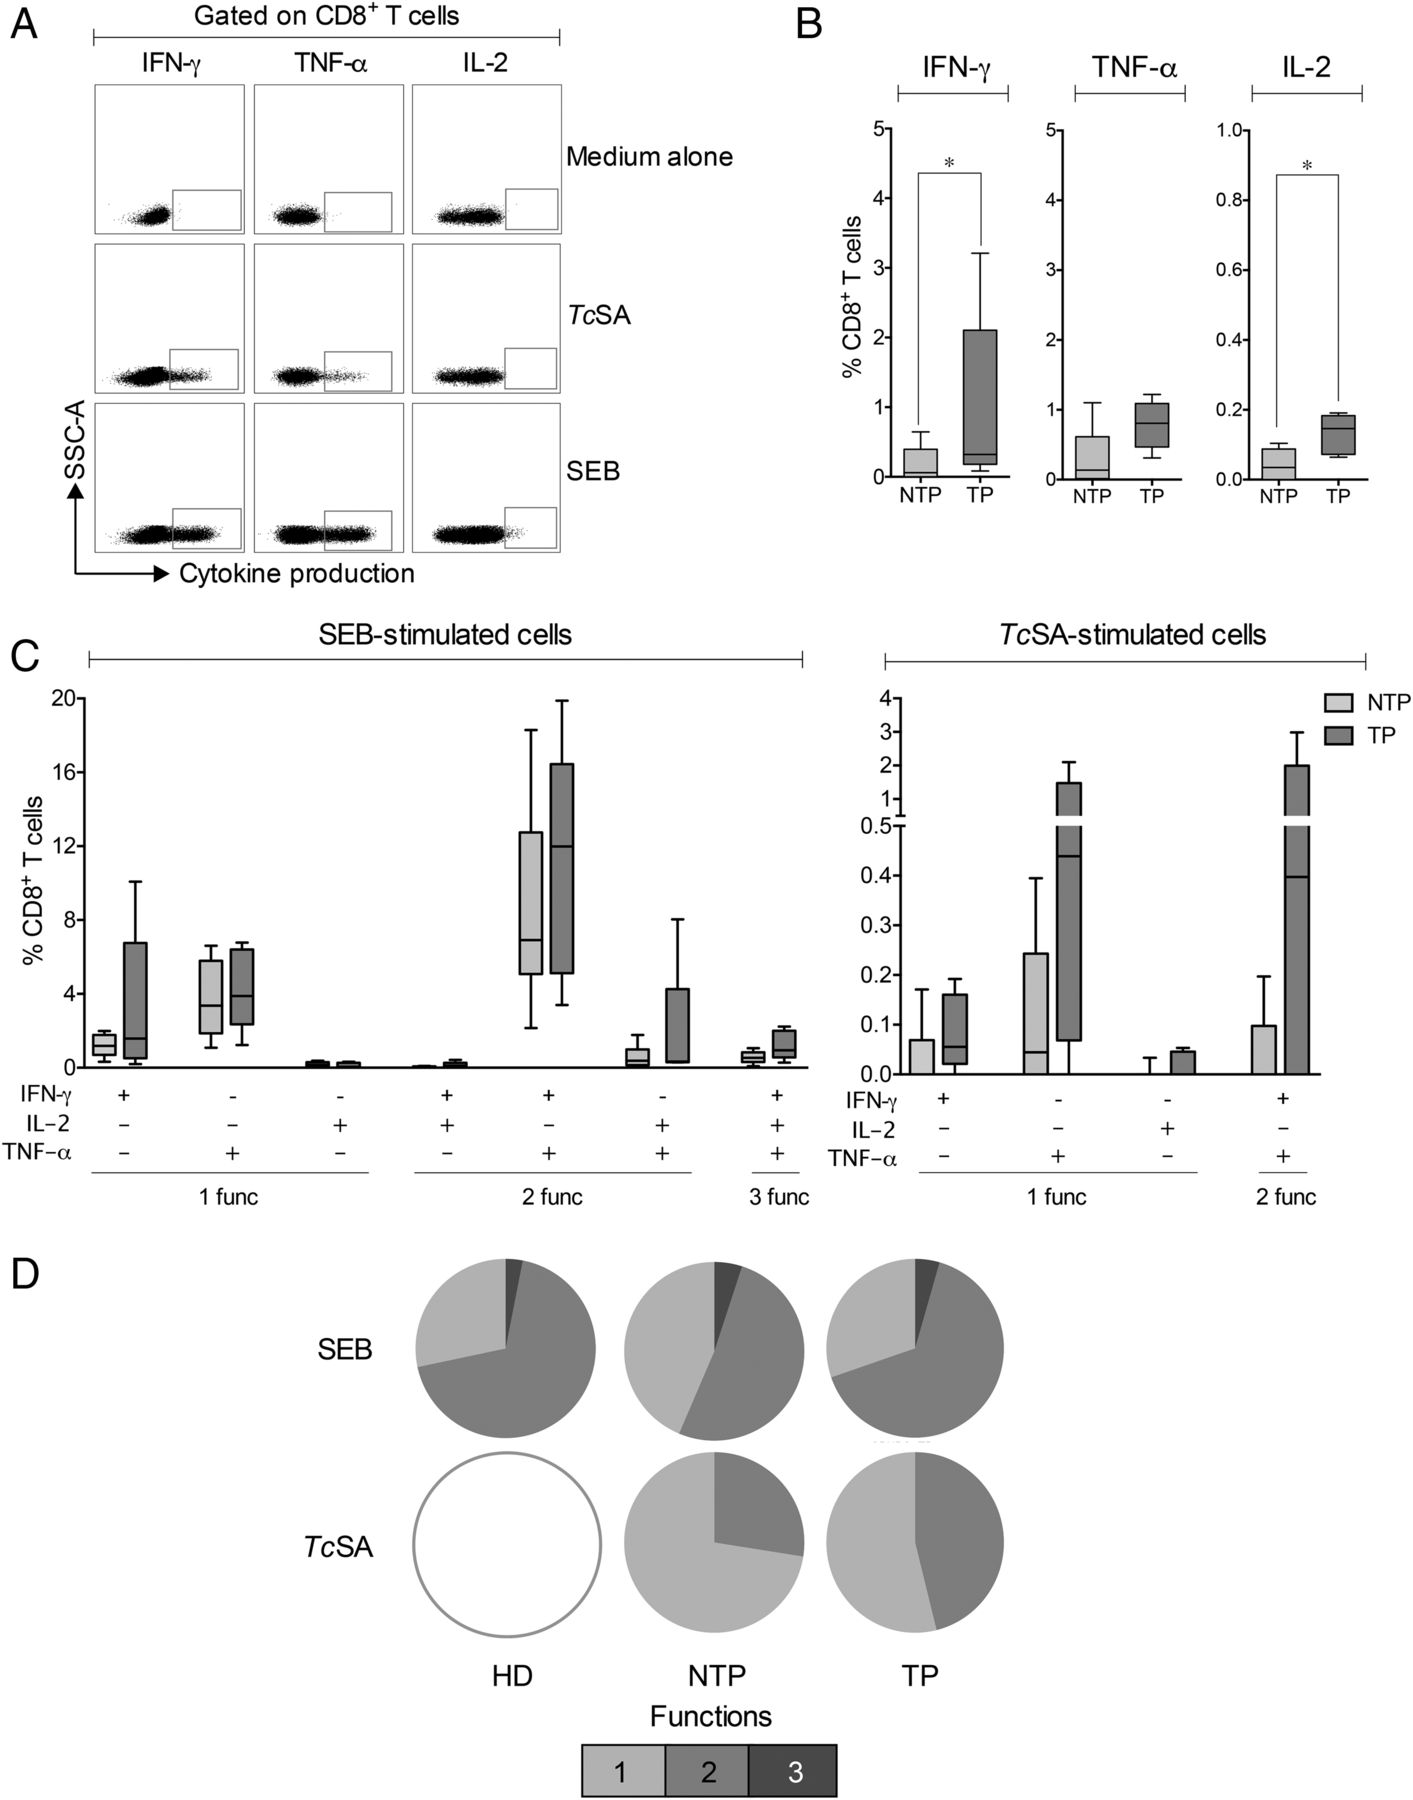 Antiparasitic Treatment Induces An Improved Cd8 T Cell Response In